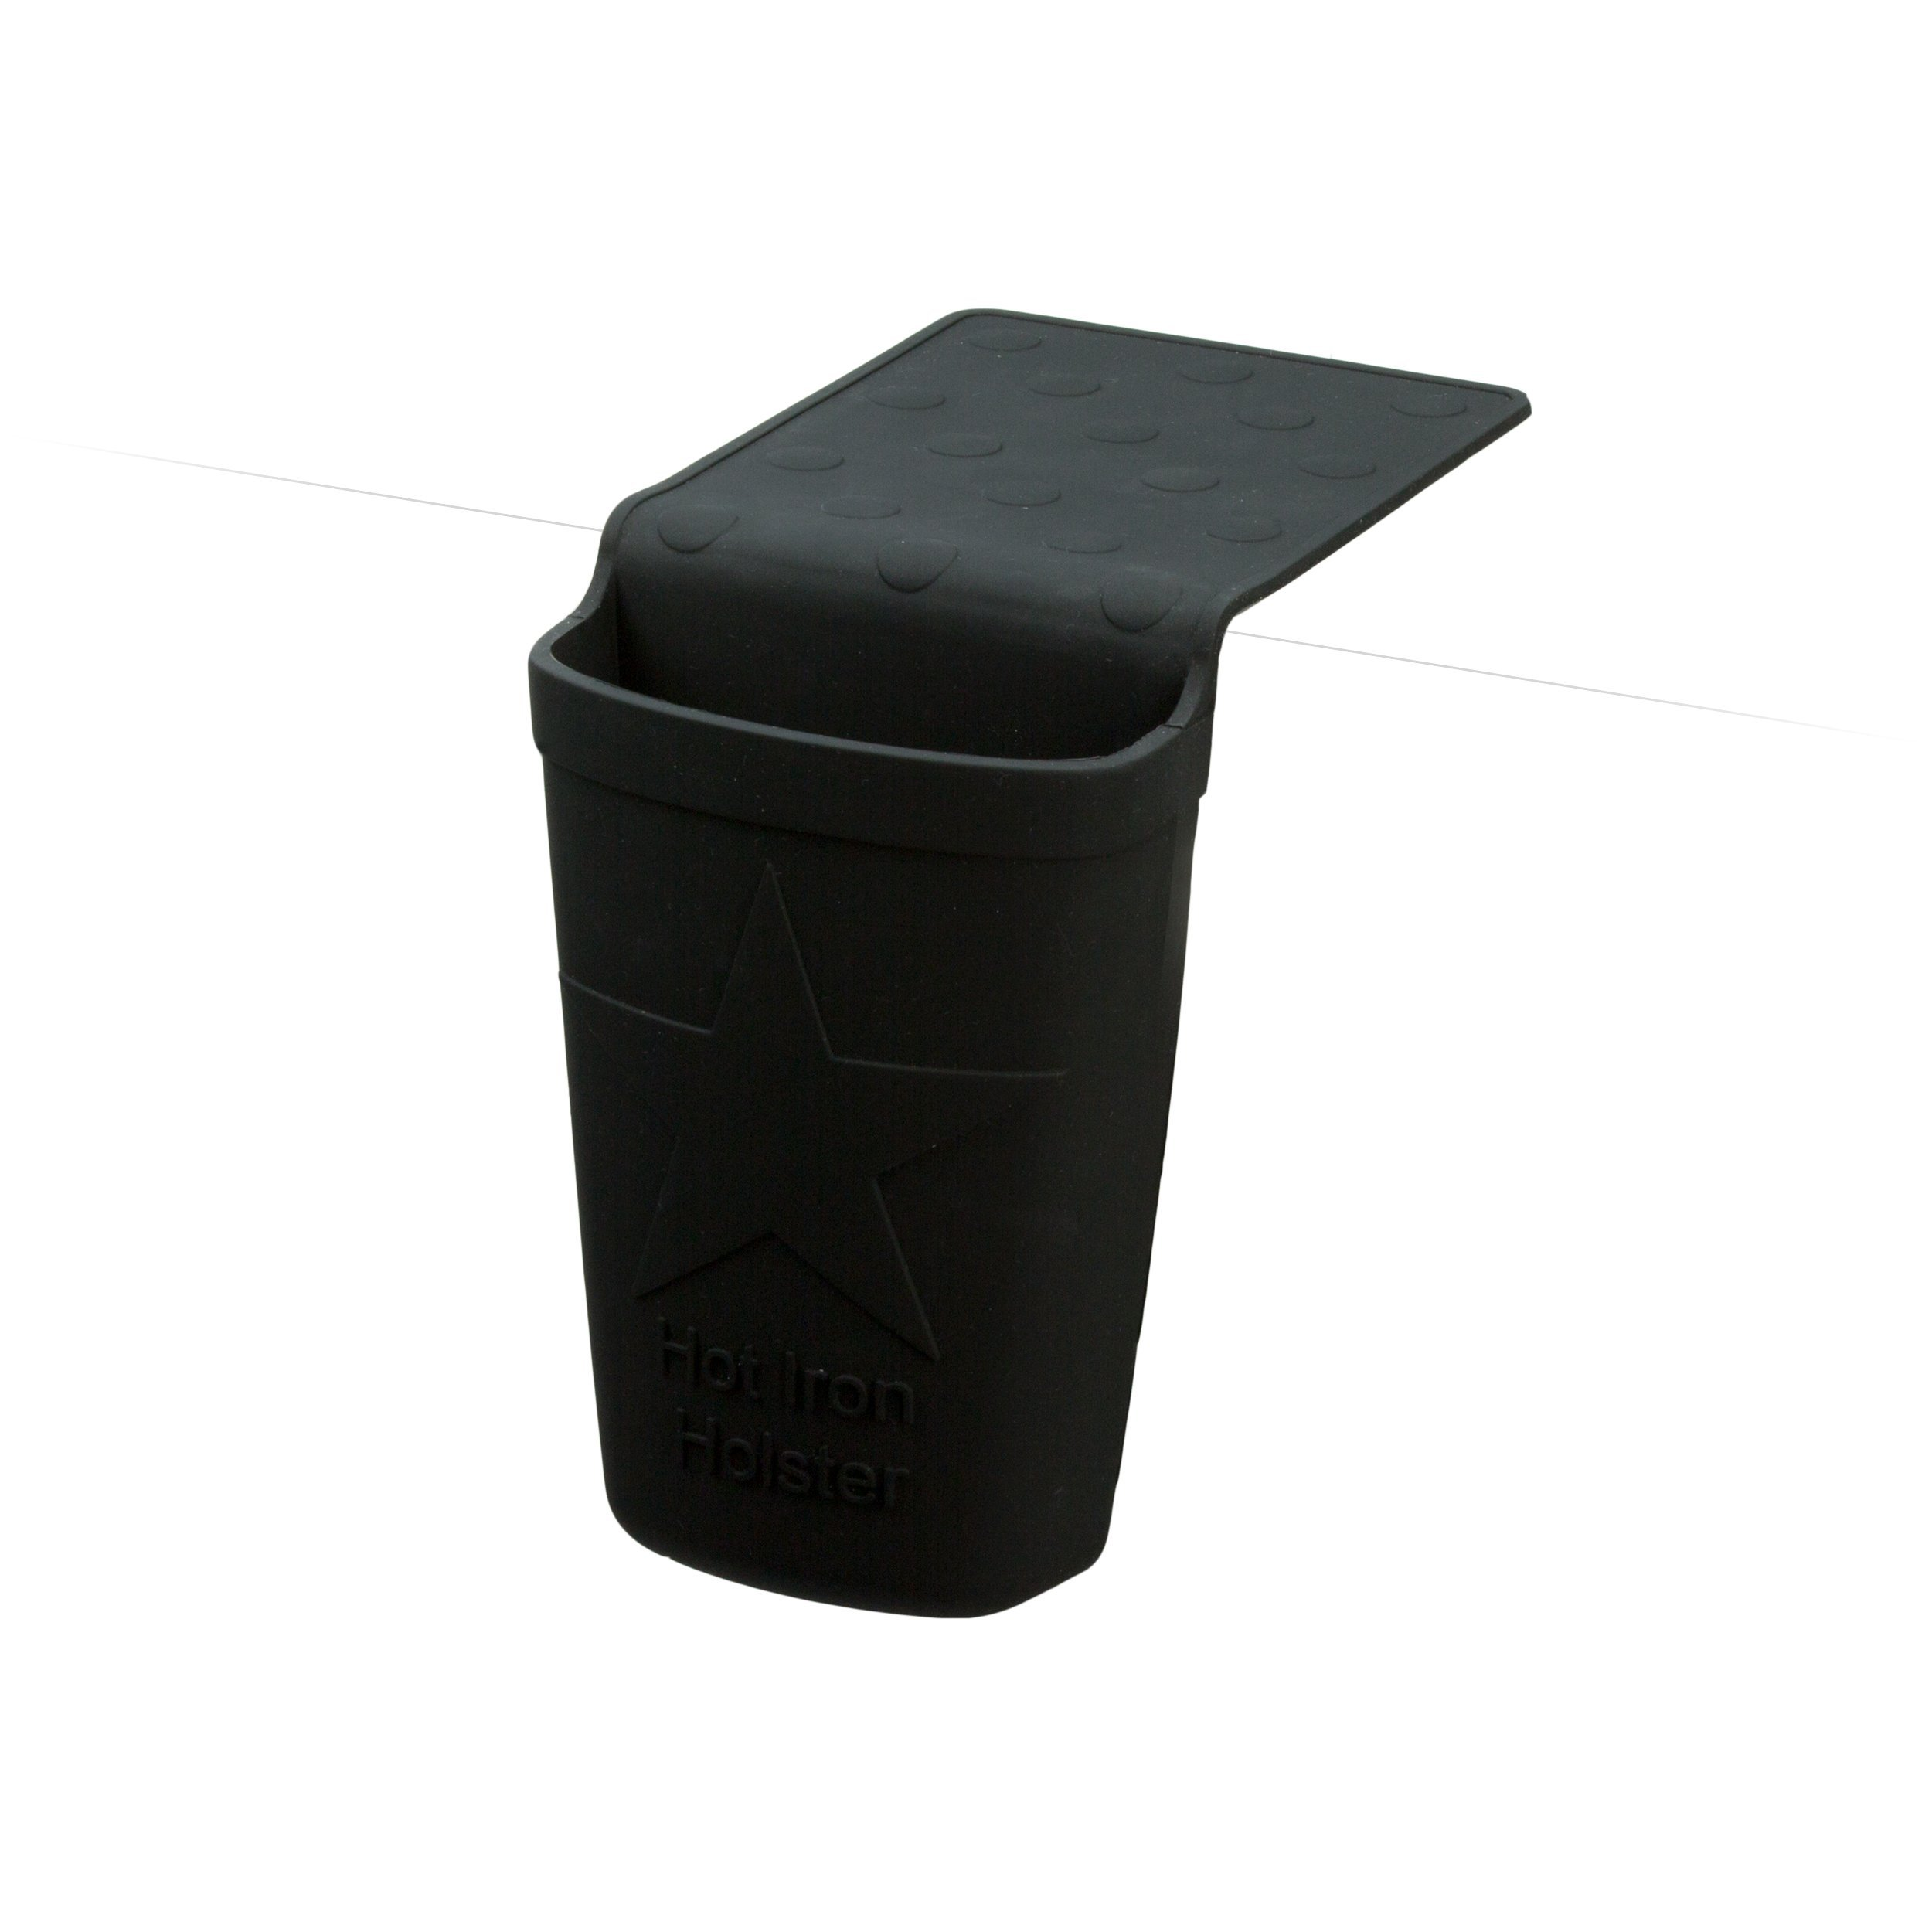 Holster Brands Hot Styling Tool Storage Holder, Deluxe, Black by Holster Brands